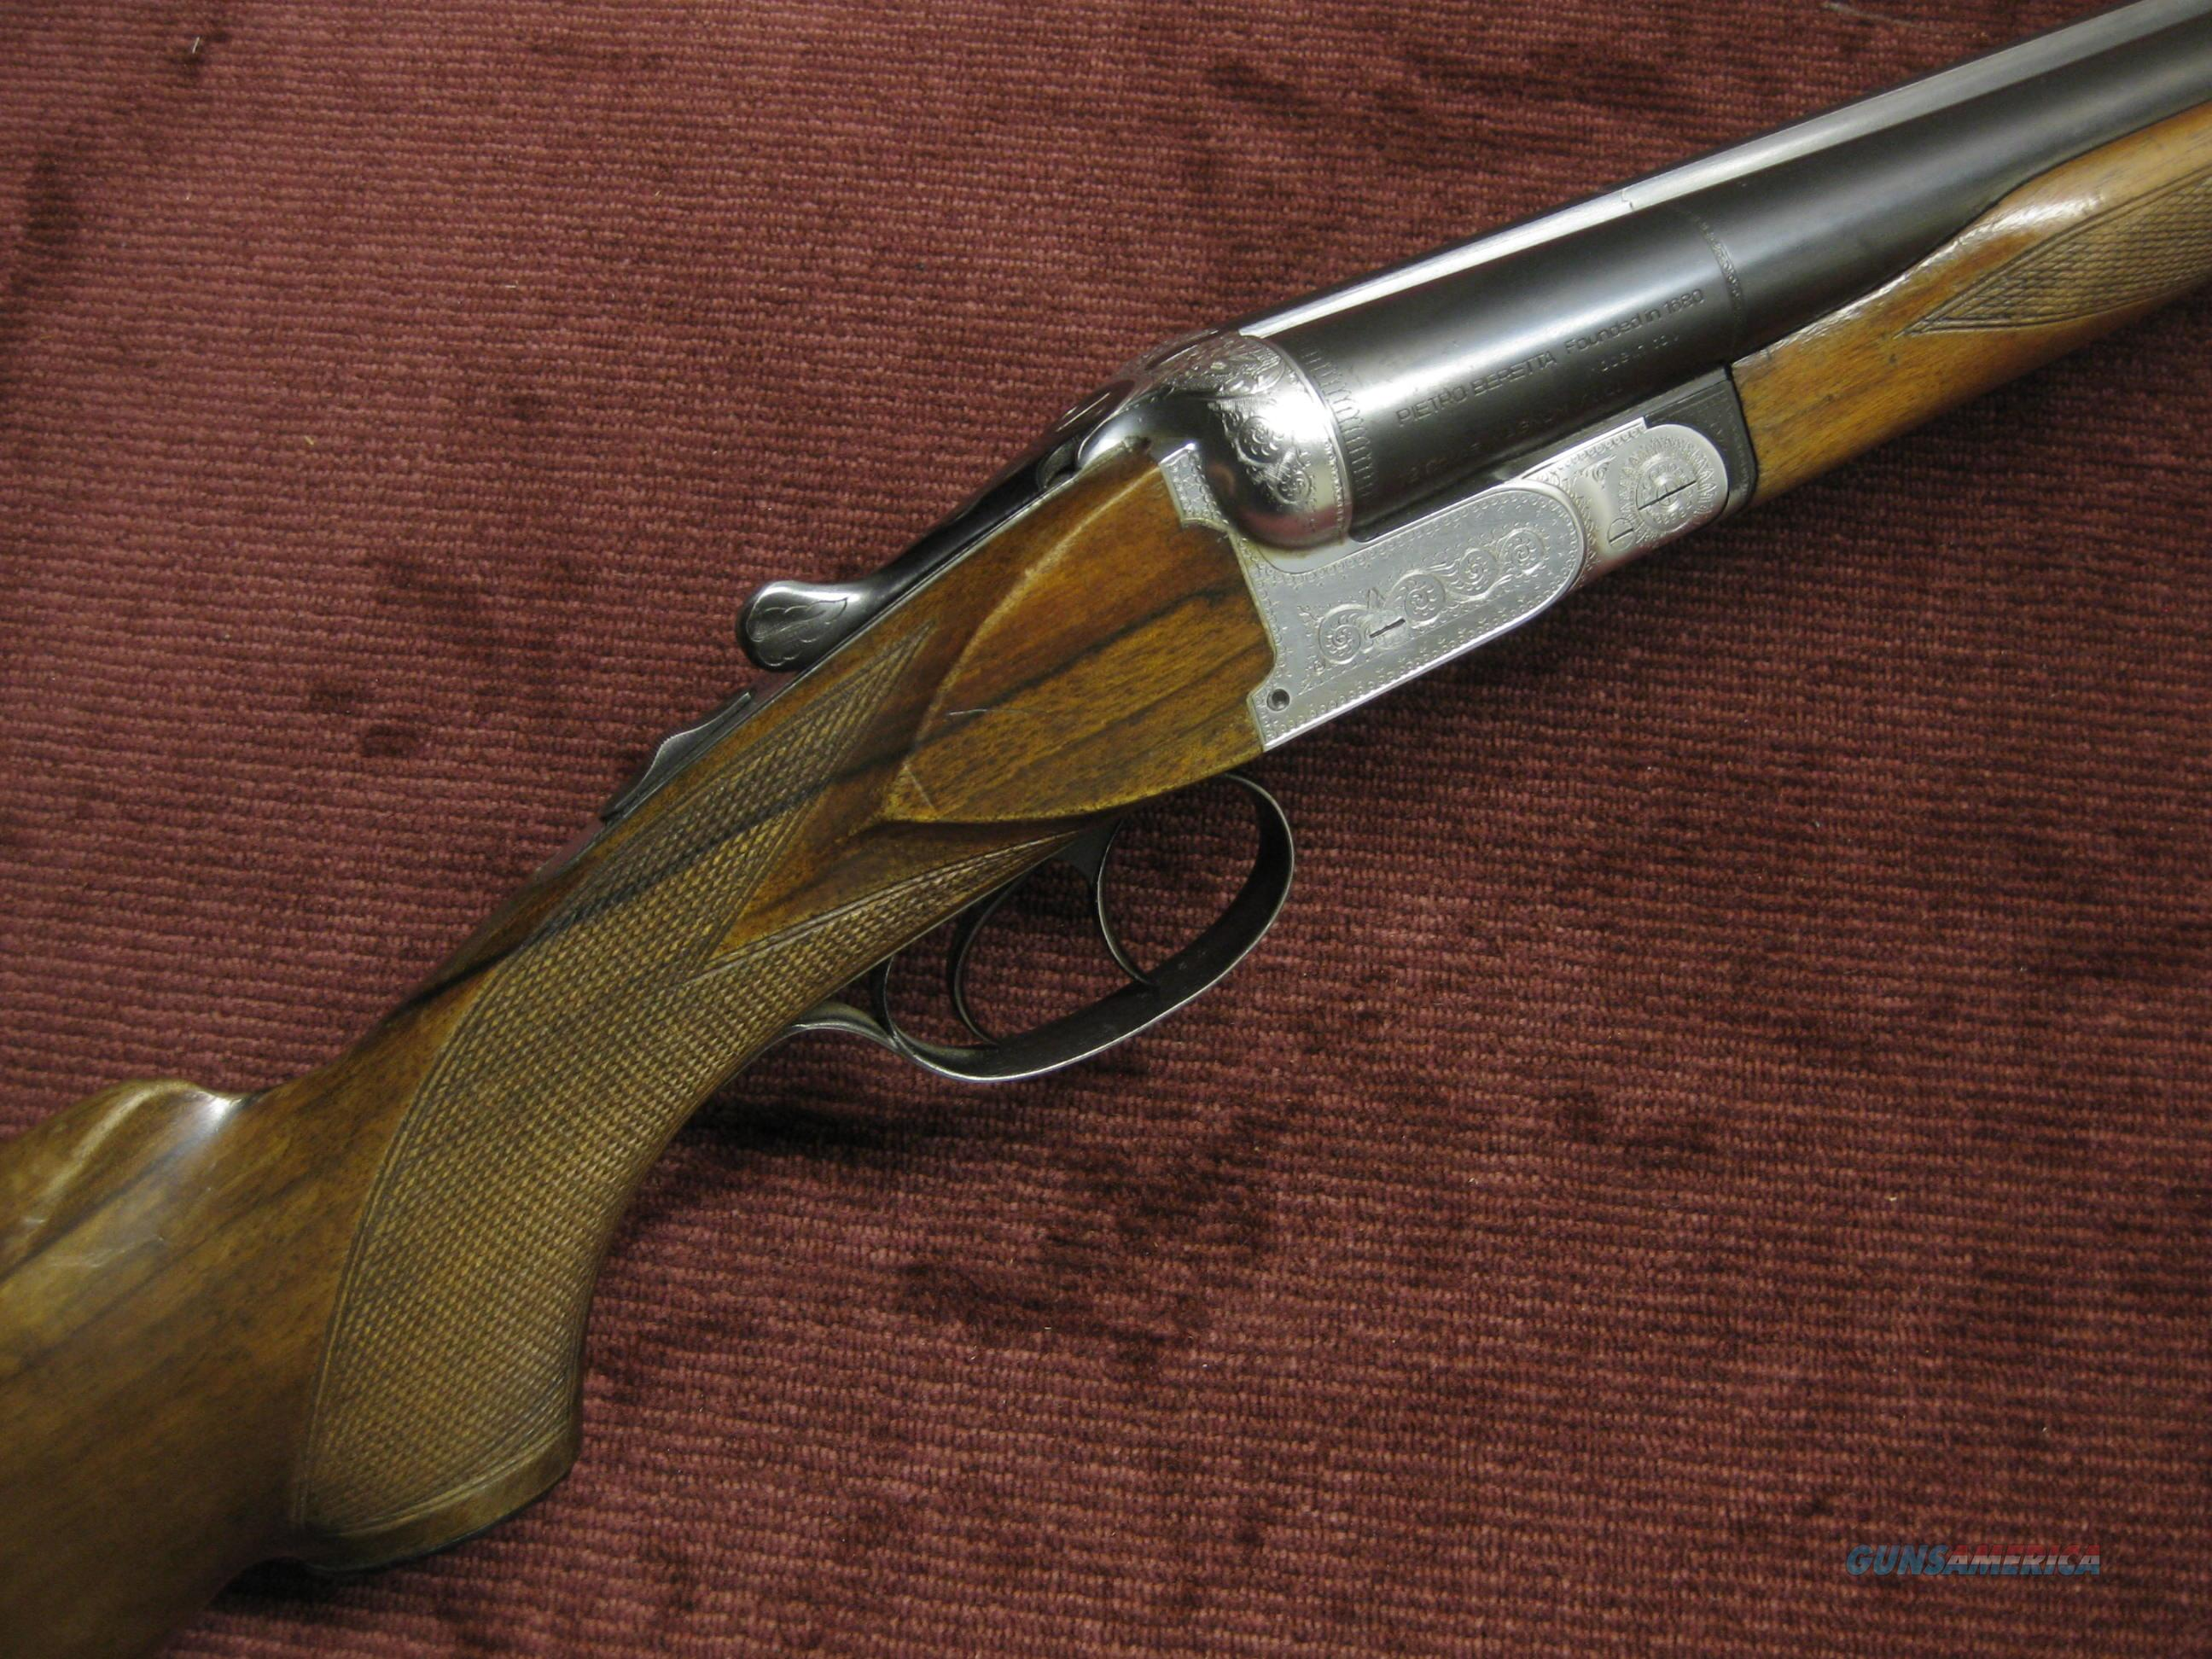 BERETTA  SILVER HAWK 12GA. MAGNUM - 32-INCH - DOUBLE TRIGGER - MADE IN 1958  Guns > Shotguns > Beretta Shotguns > SxS